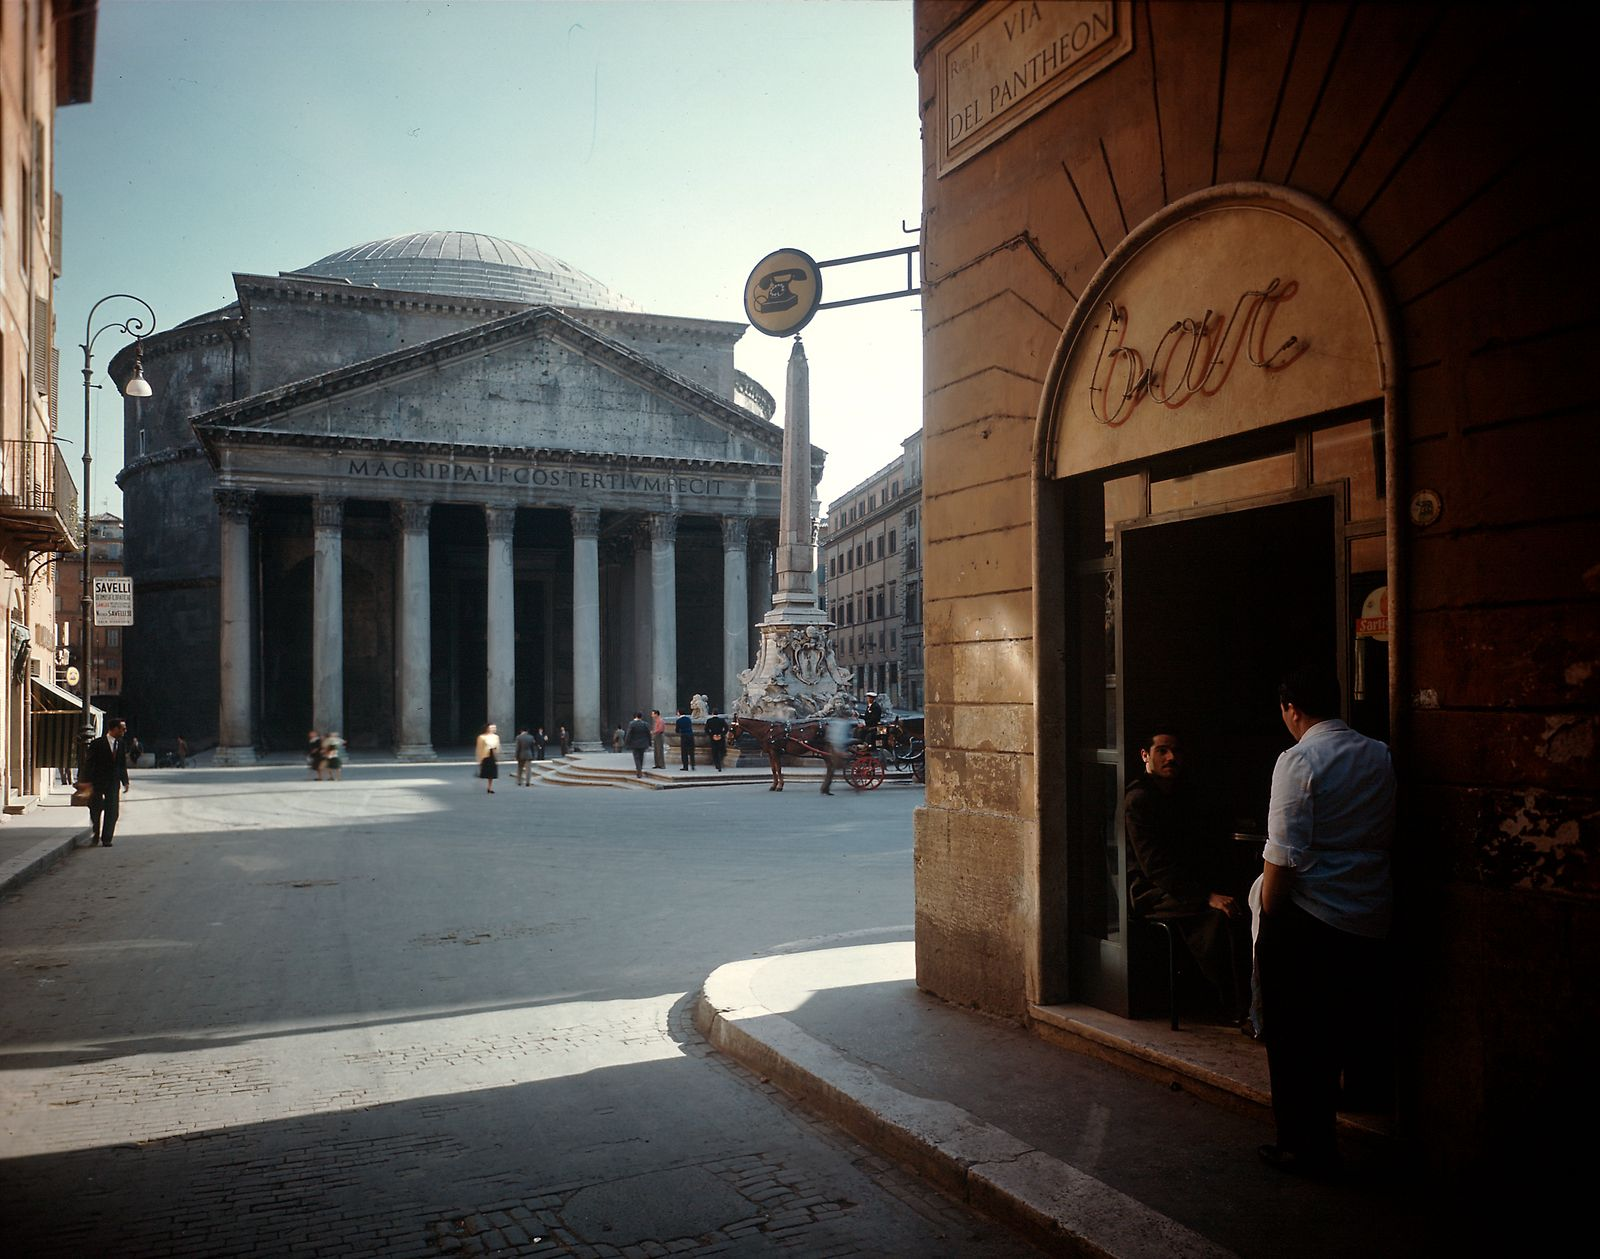 View of exterior front of The Pantheon.